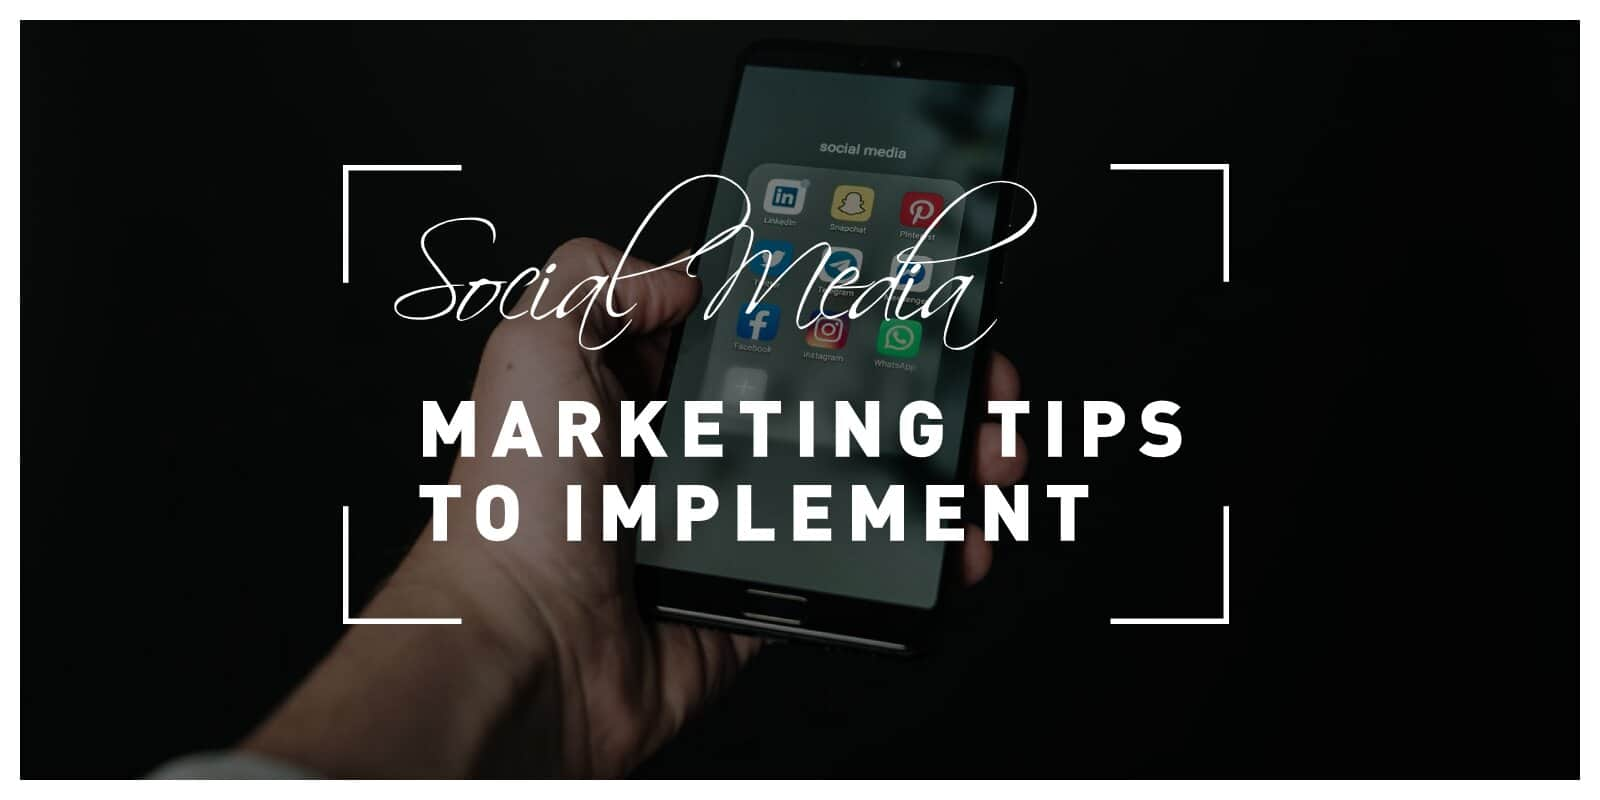 5 Social Media Marketing Tips to Implement Into Your Strategy